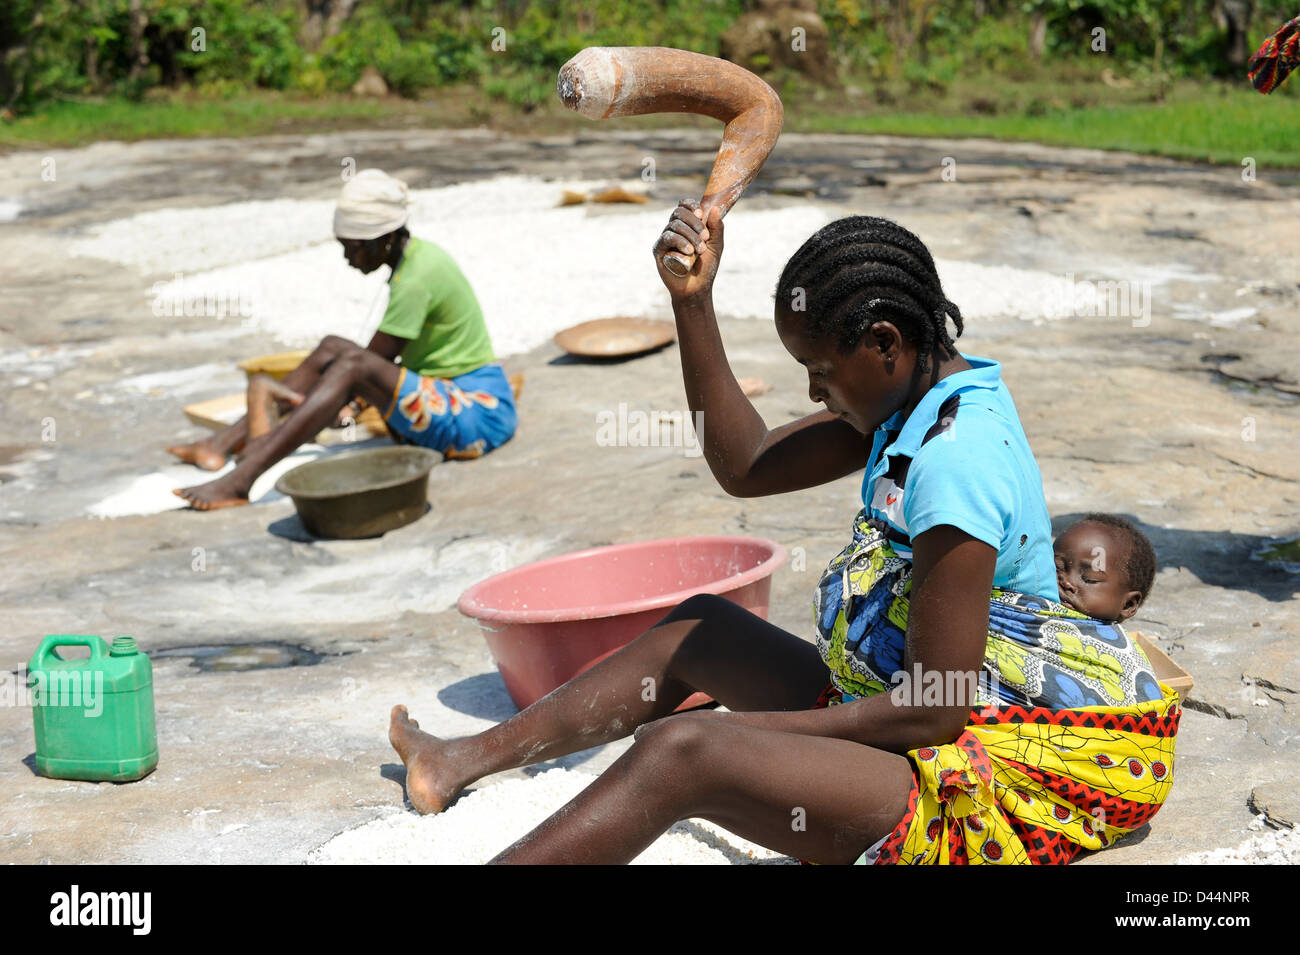 ANGOLA Kwanza Sul, rural development project, village Catchandja, women mash Cassava to flour which is the stable - Stock Image